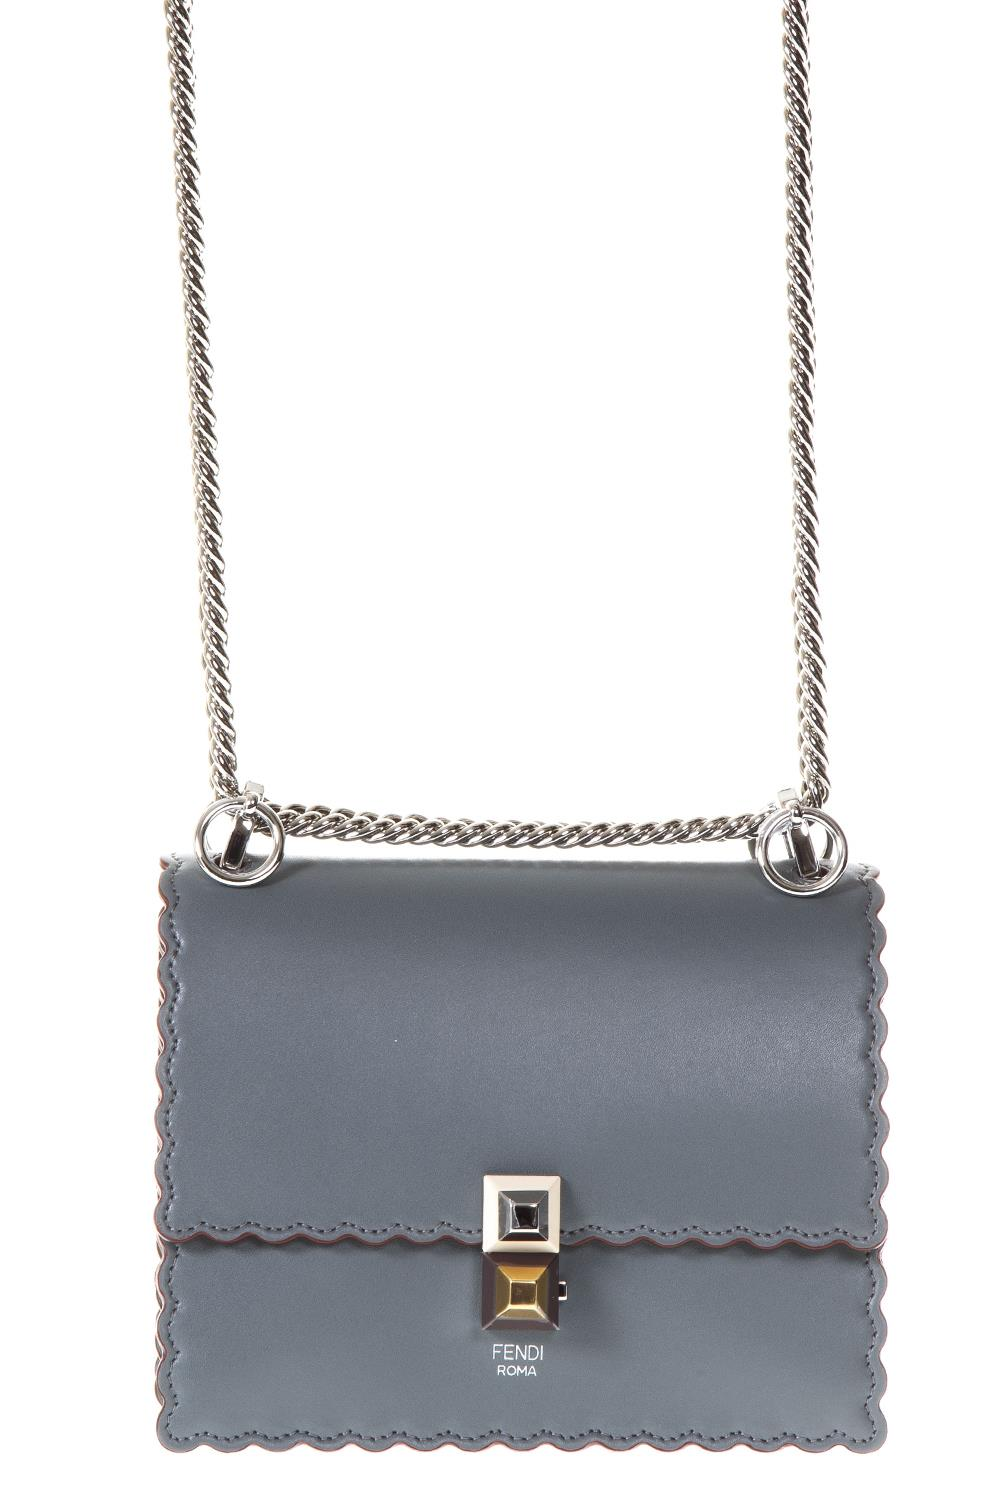 ce022b4f40 ... coupon code for kan i grey bag in leather ss 2018 fendi boutique  galiano 5dfda 2a29b